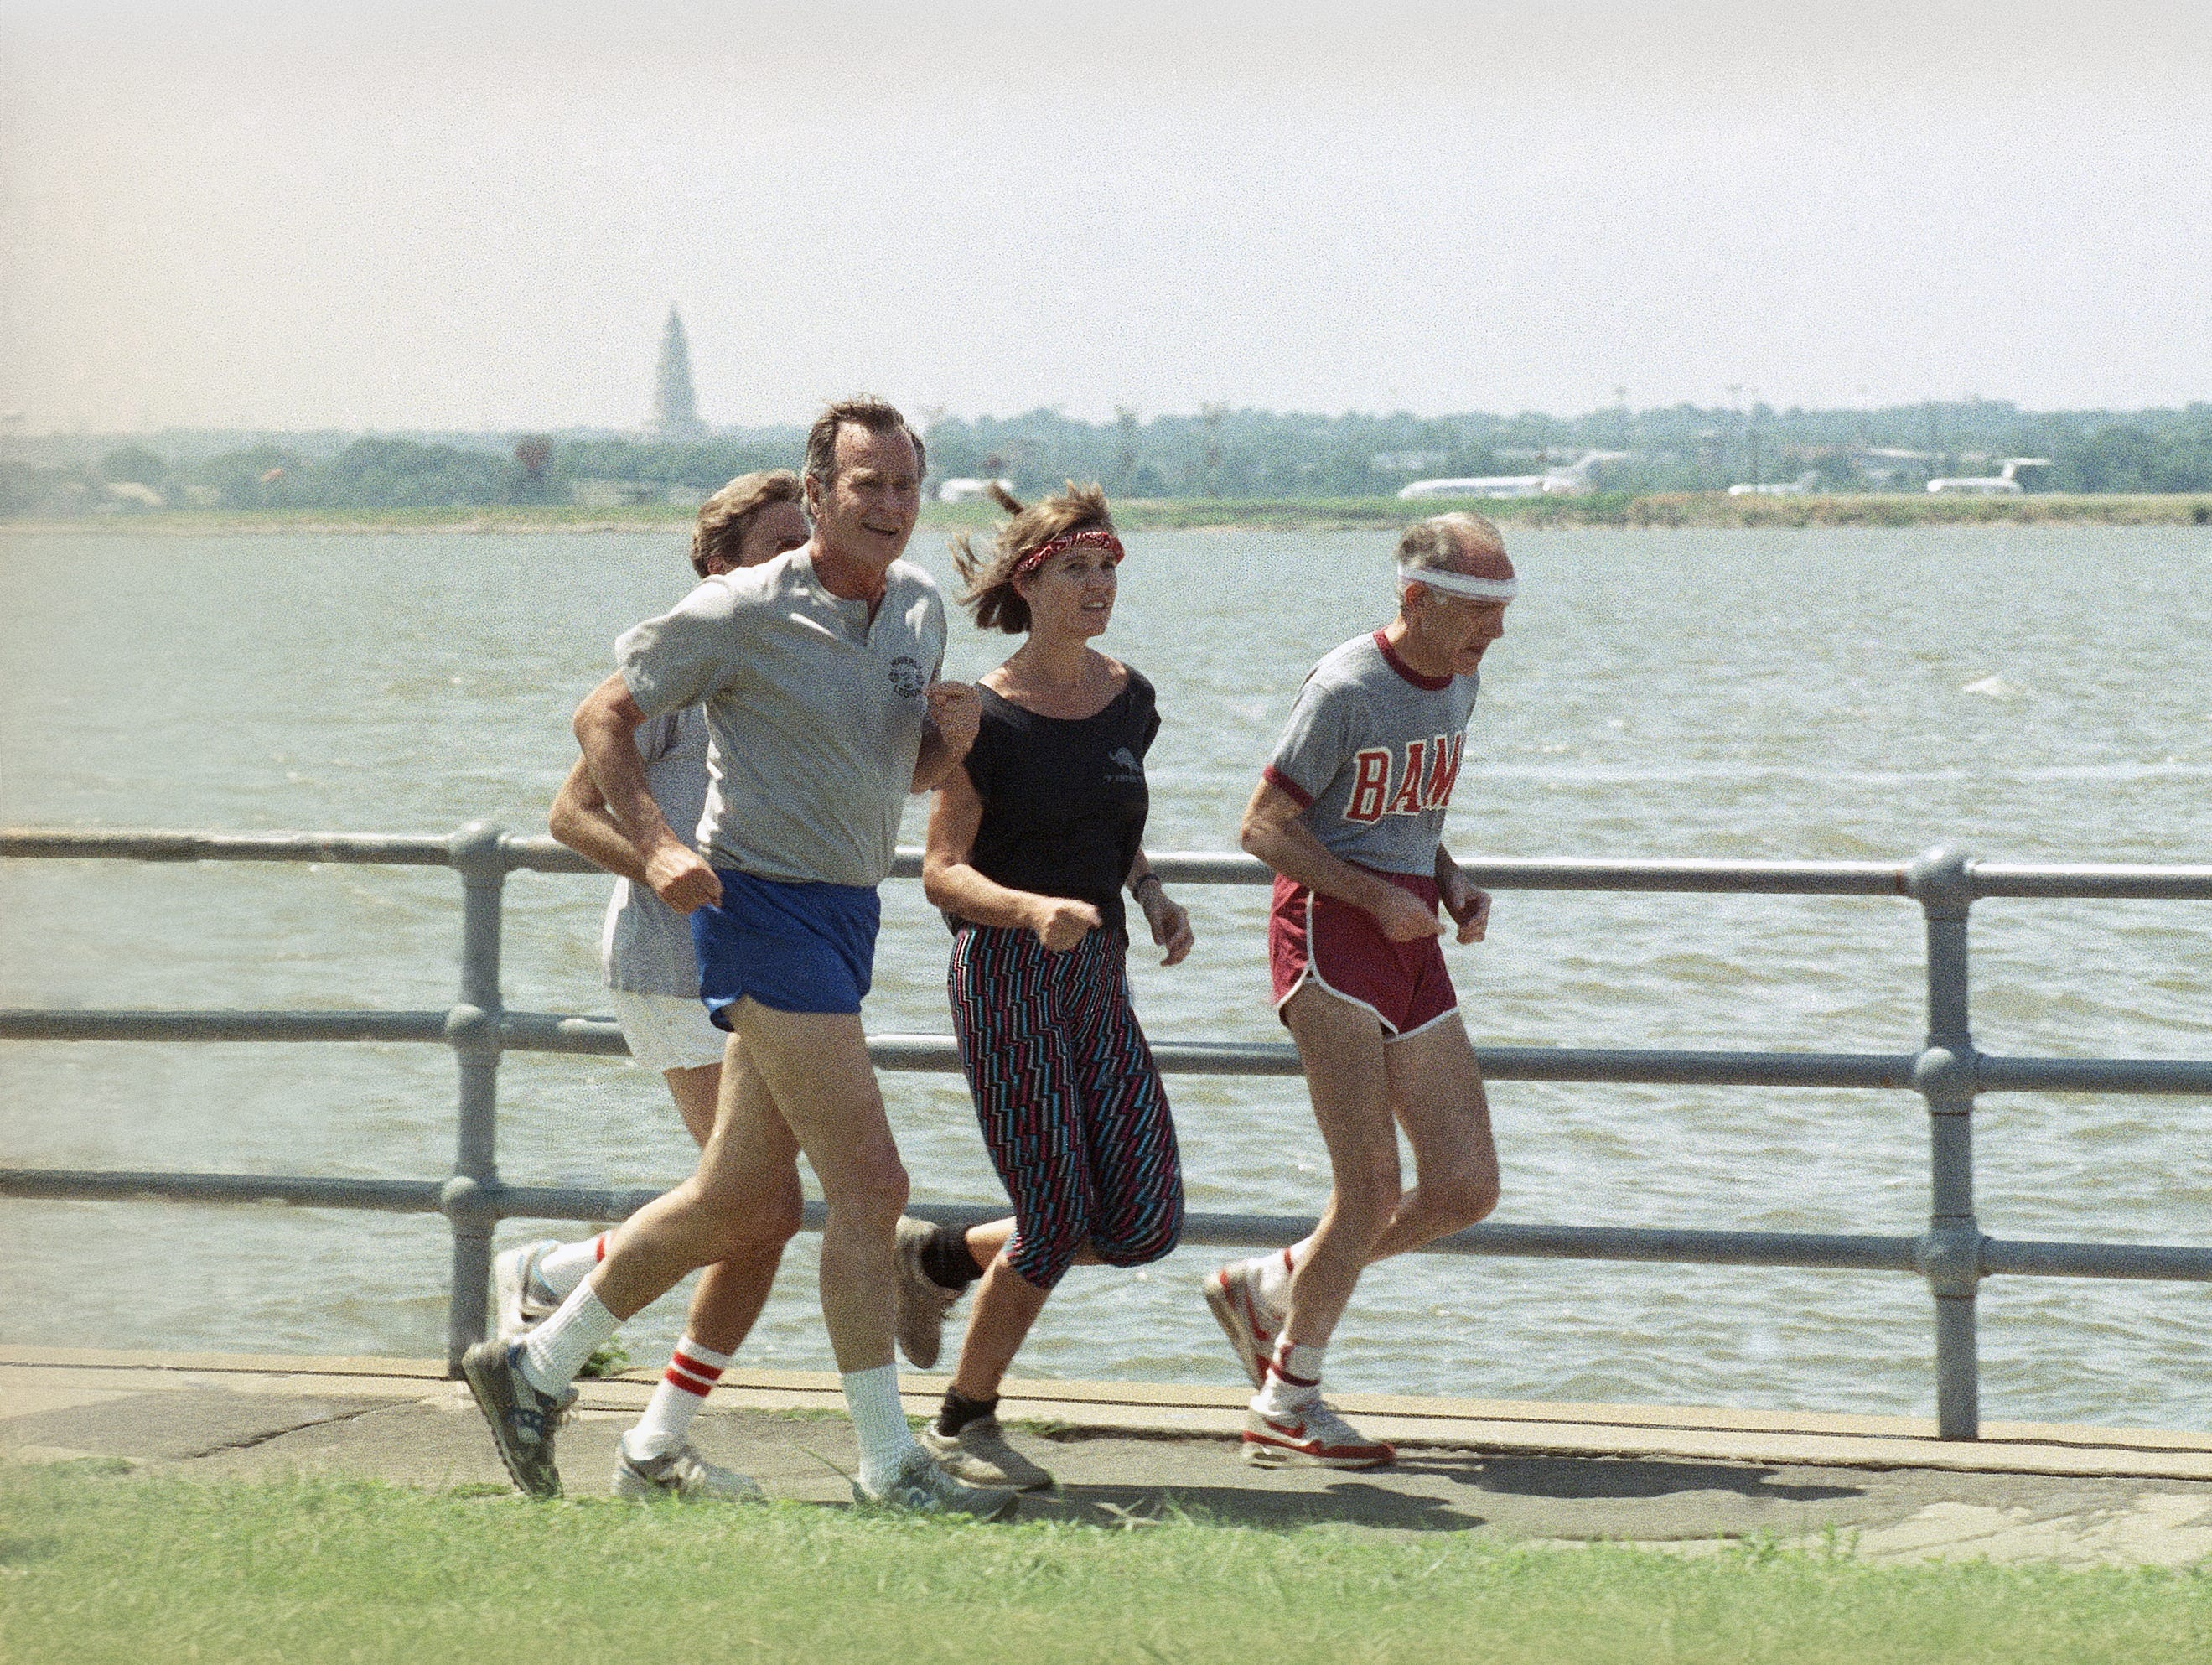 President George H. Bush goes jogging with reporters Norm Sandler, left, Rita Beamish, and personal friend Vic Gold, right, Tuesday, August 8, 1989, in a Washington park along the Potomac River. (AP Photo/Barry Thumma)